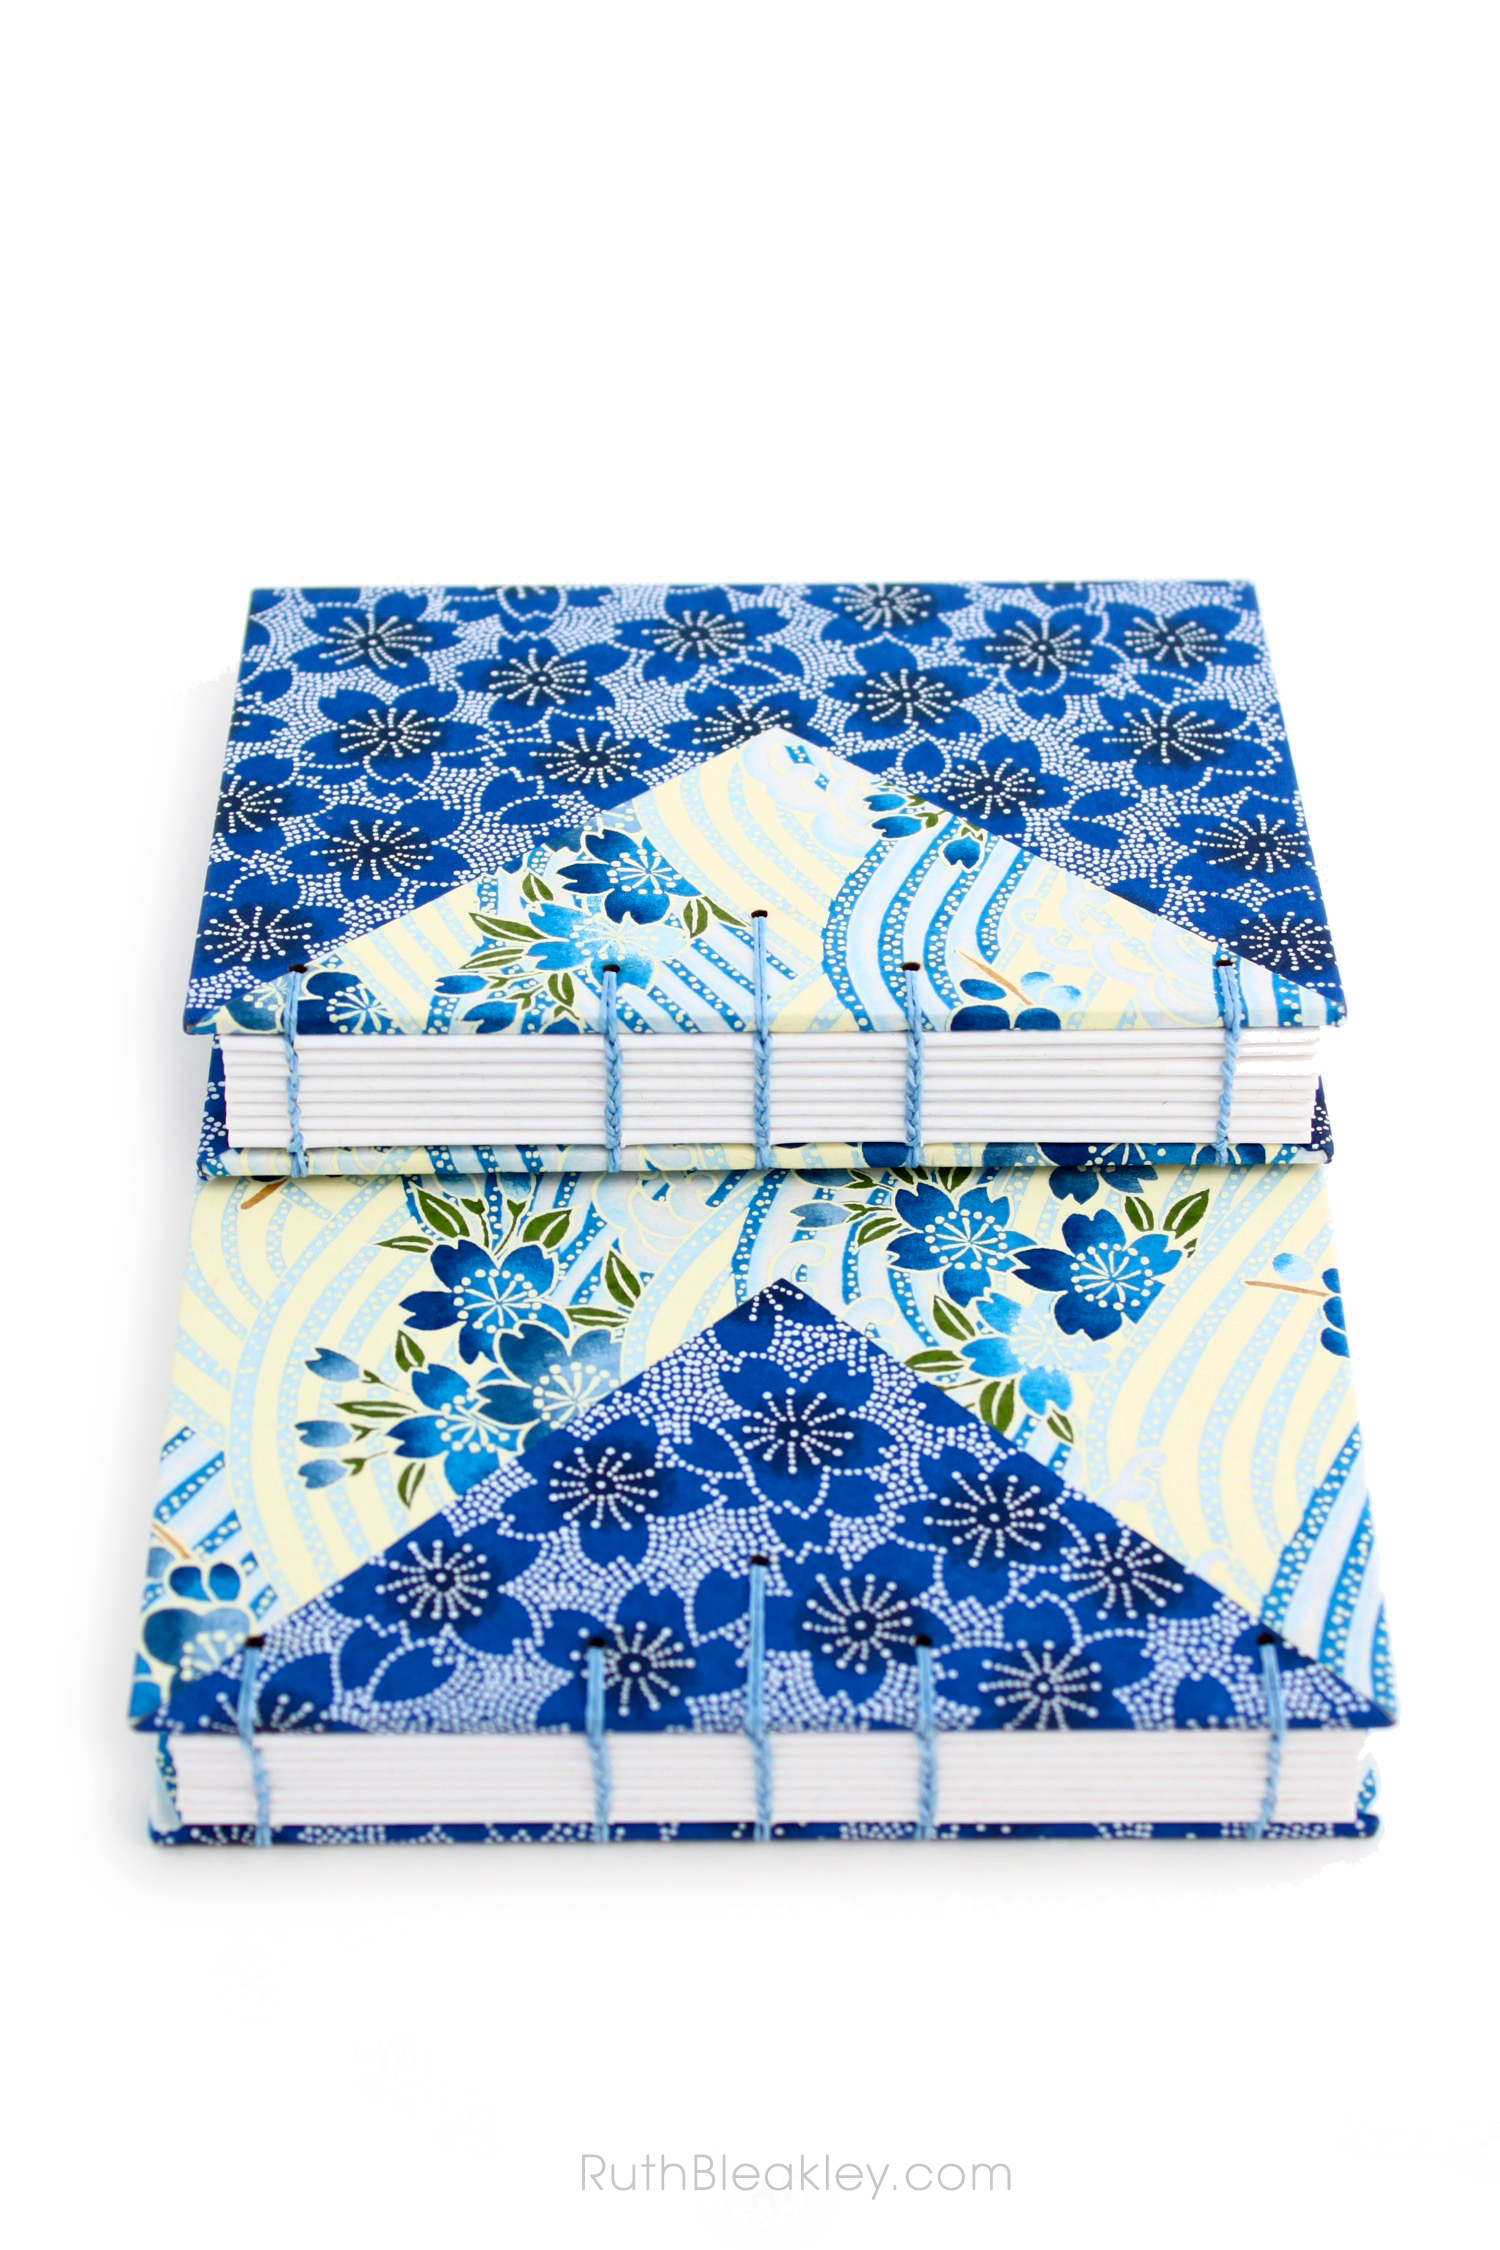 Blue flowers Twin Journals handmade by Ruth Bleakley Coptic Stitch with Japanese Yuzen Paper - 8